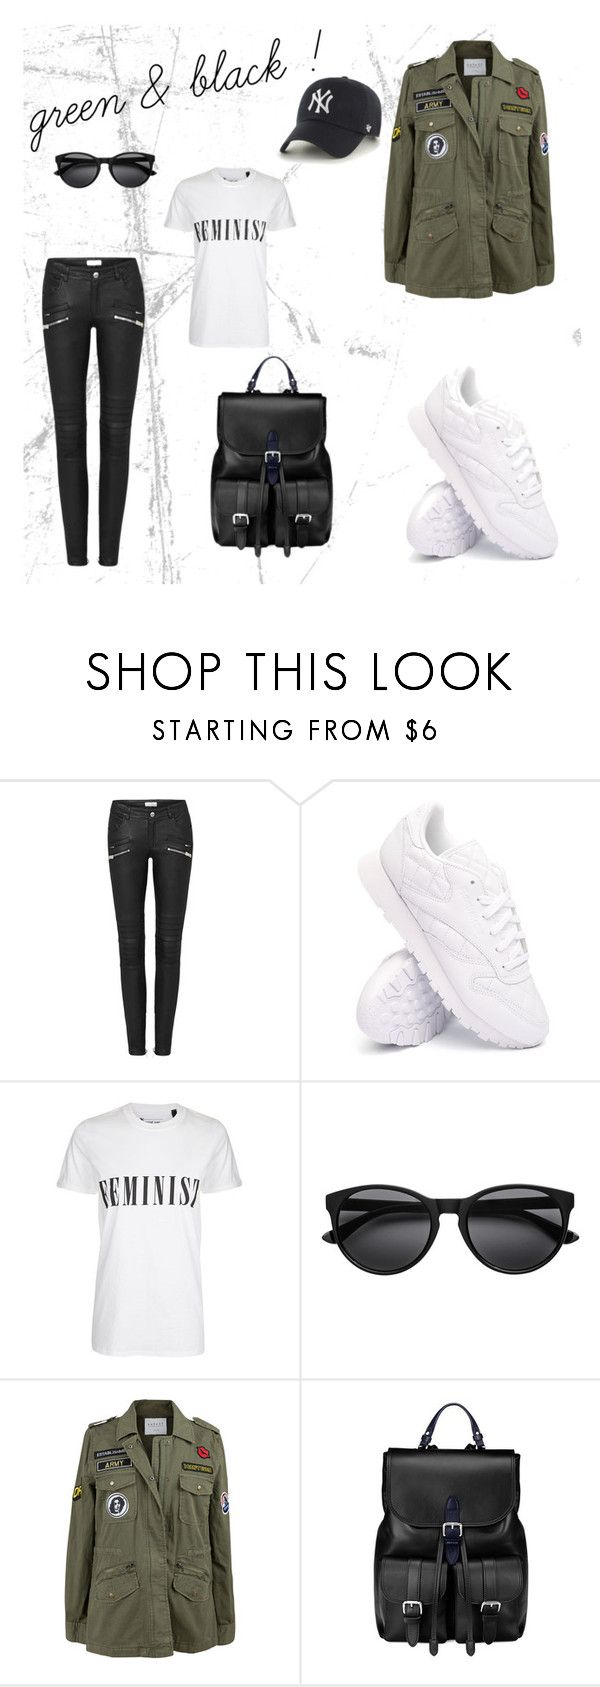 """green & black!"" by sabeeyfeel on Polyvore featuring Mode, Reebok, Tee and Cake, Velvet by Graham & Spencer, Aspinal of London und '47 Brand"